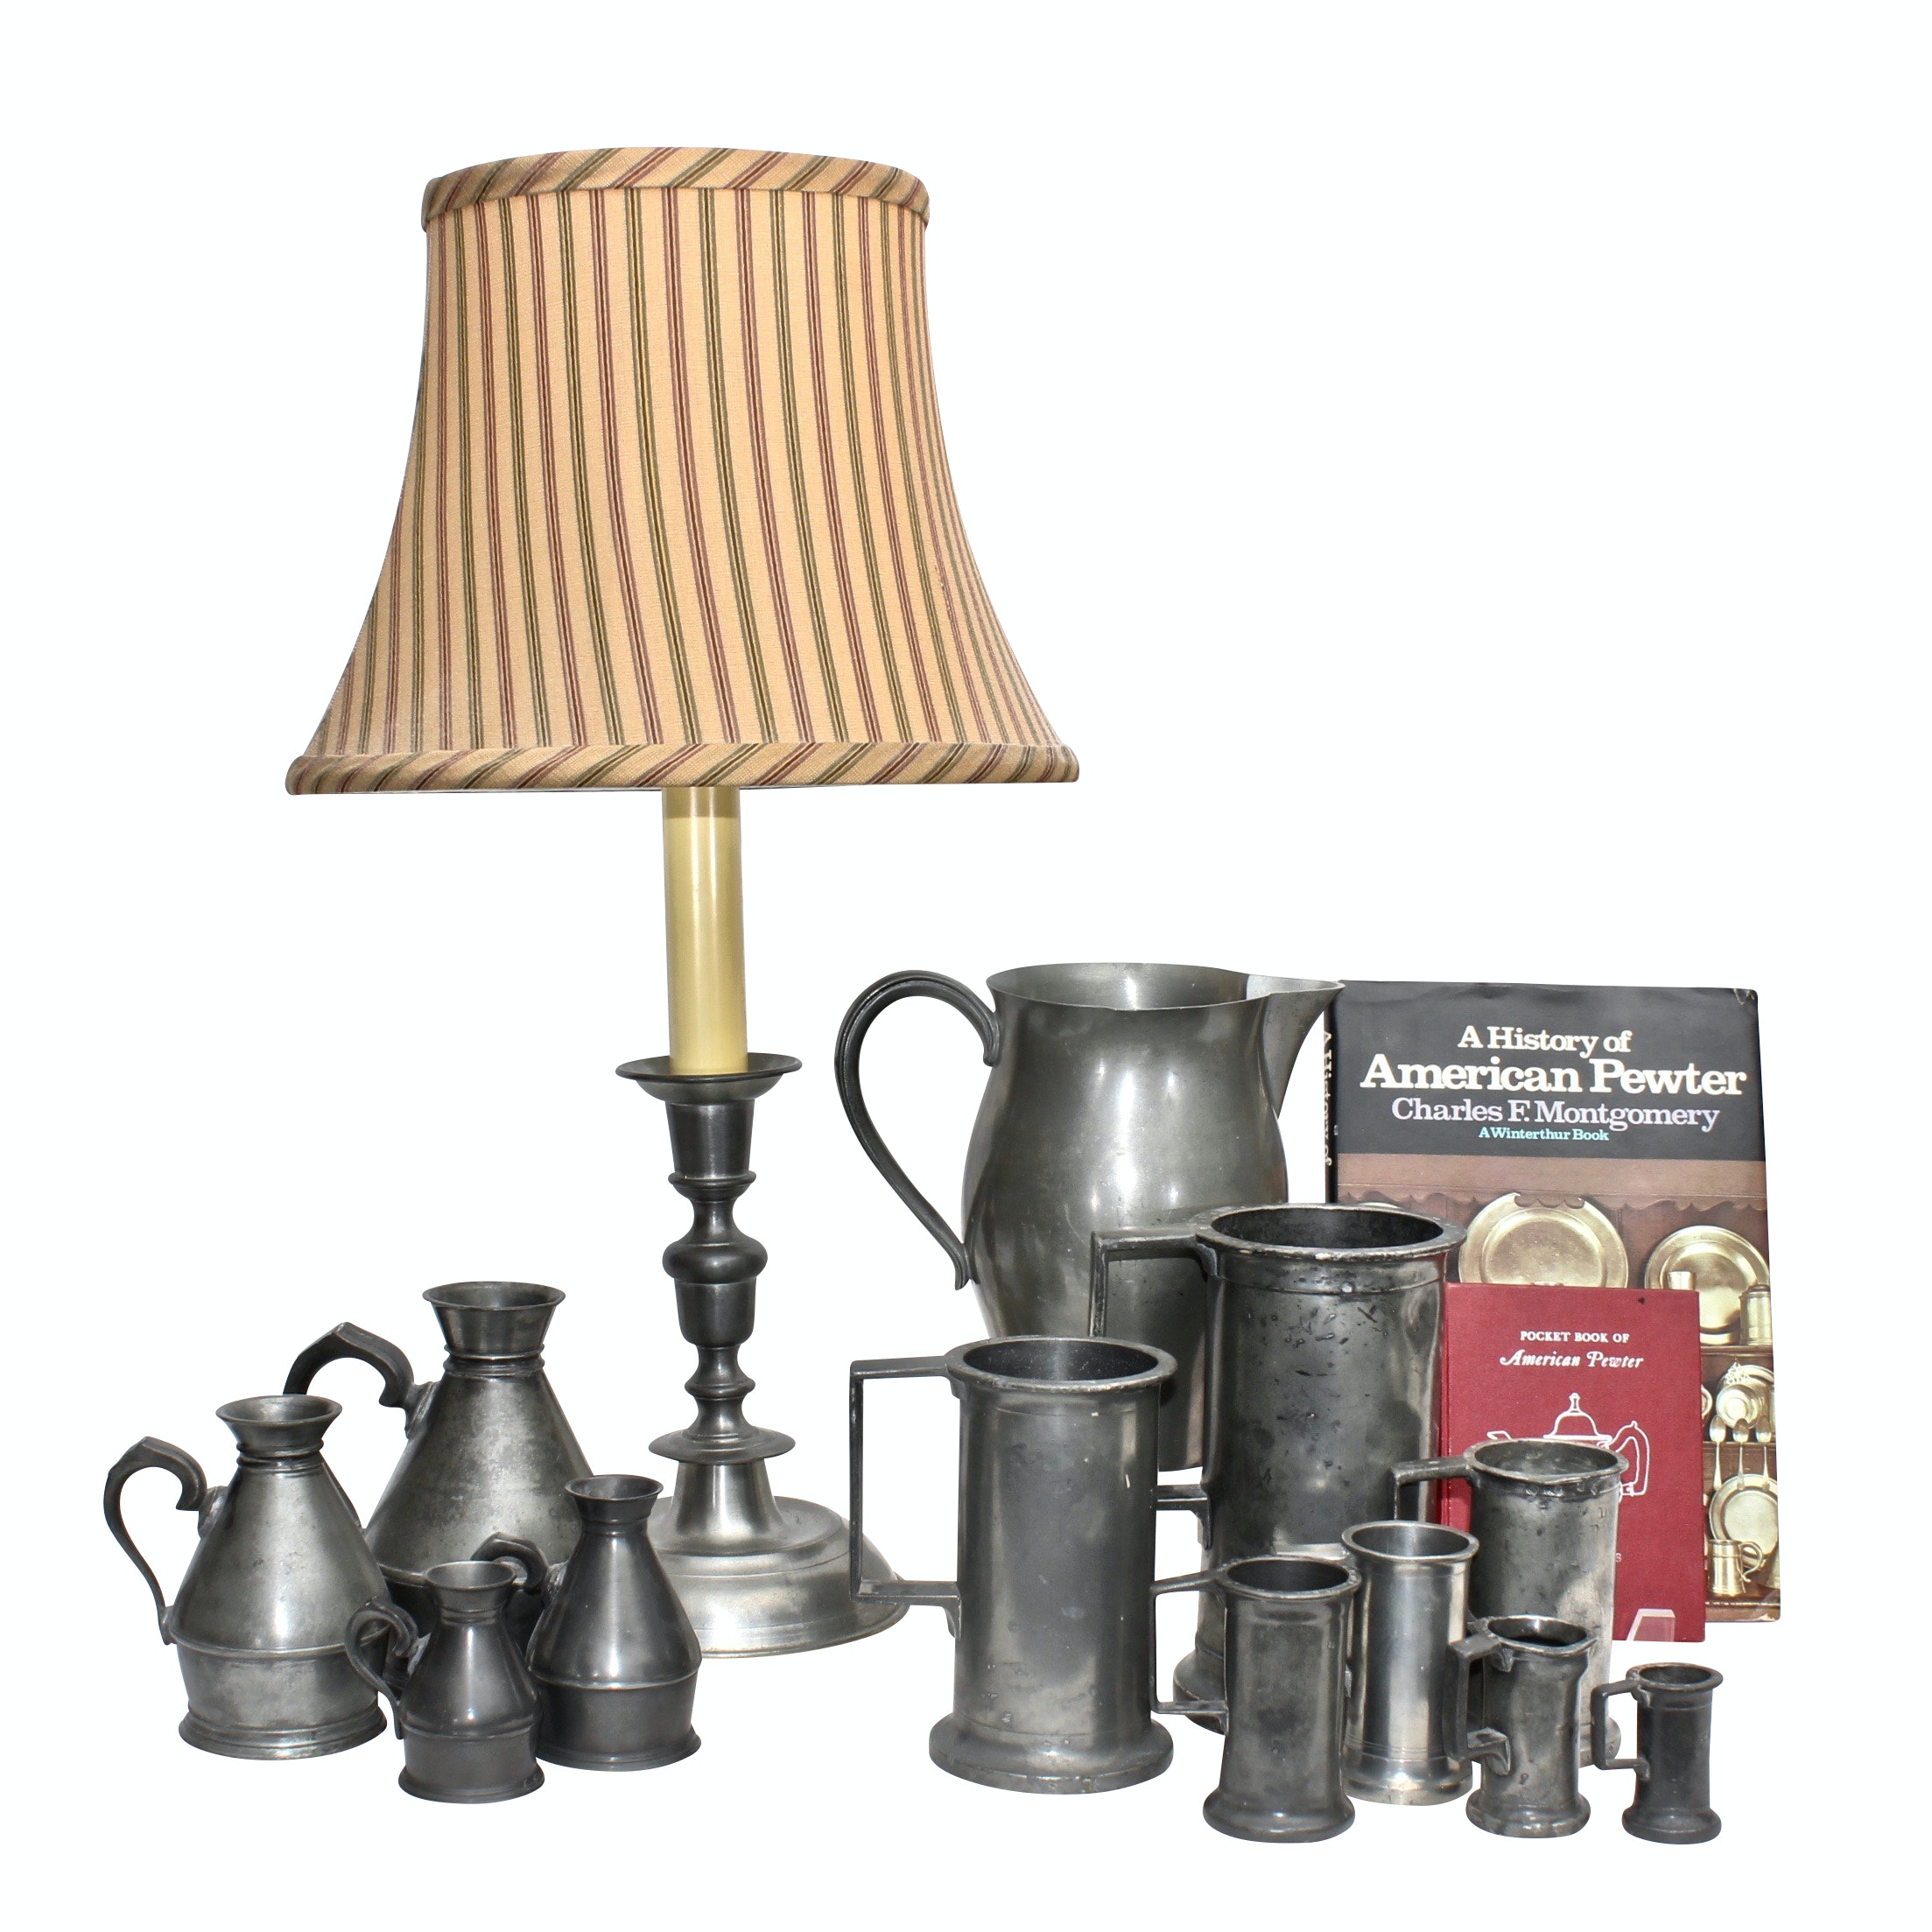 Pewter Tableware Collection, Woodbury Pewterers Table Lamp and Collector's Books